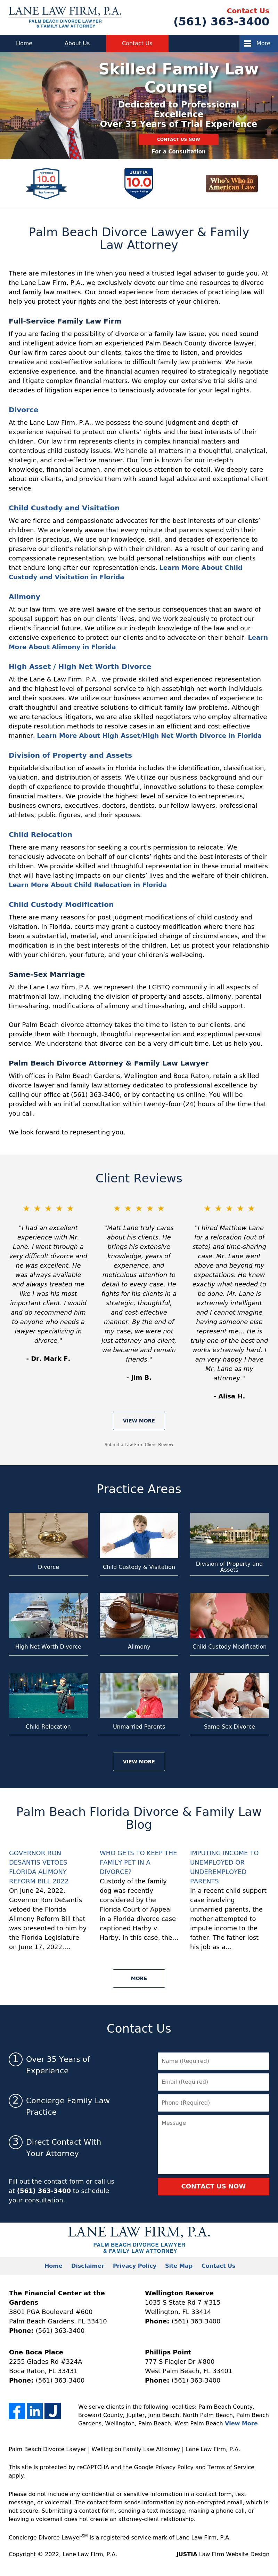 Matthew Lane & Associates, P.A. - Wellington FL Lawyers